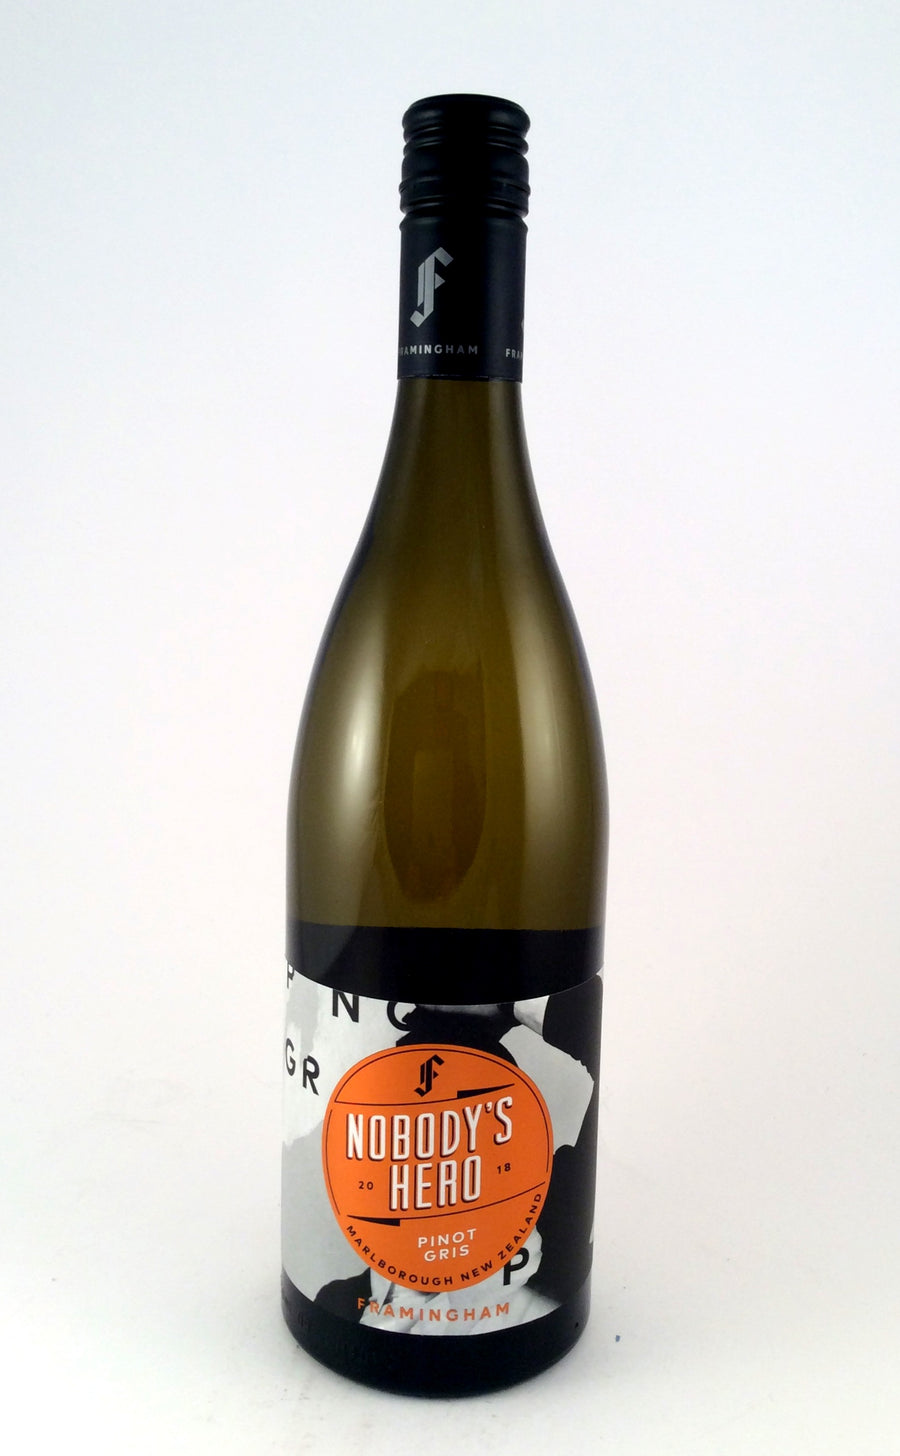 Nobody's Hero Pinot Gris - Wineseeker